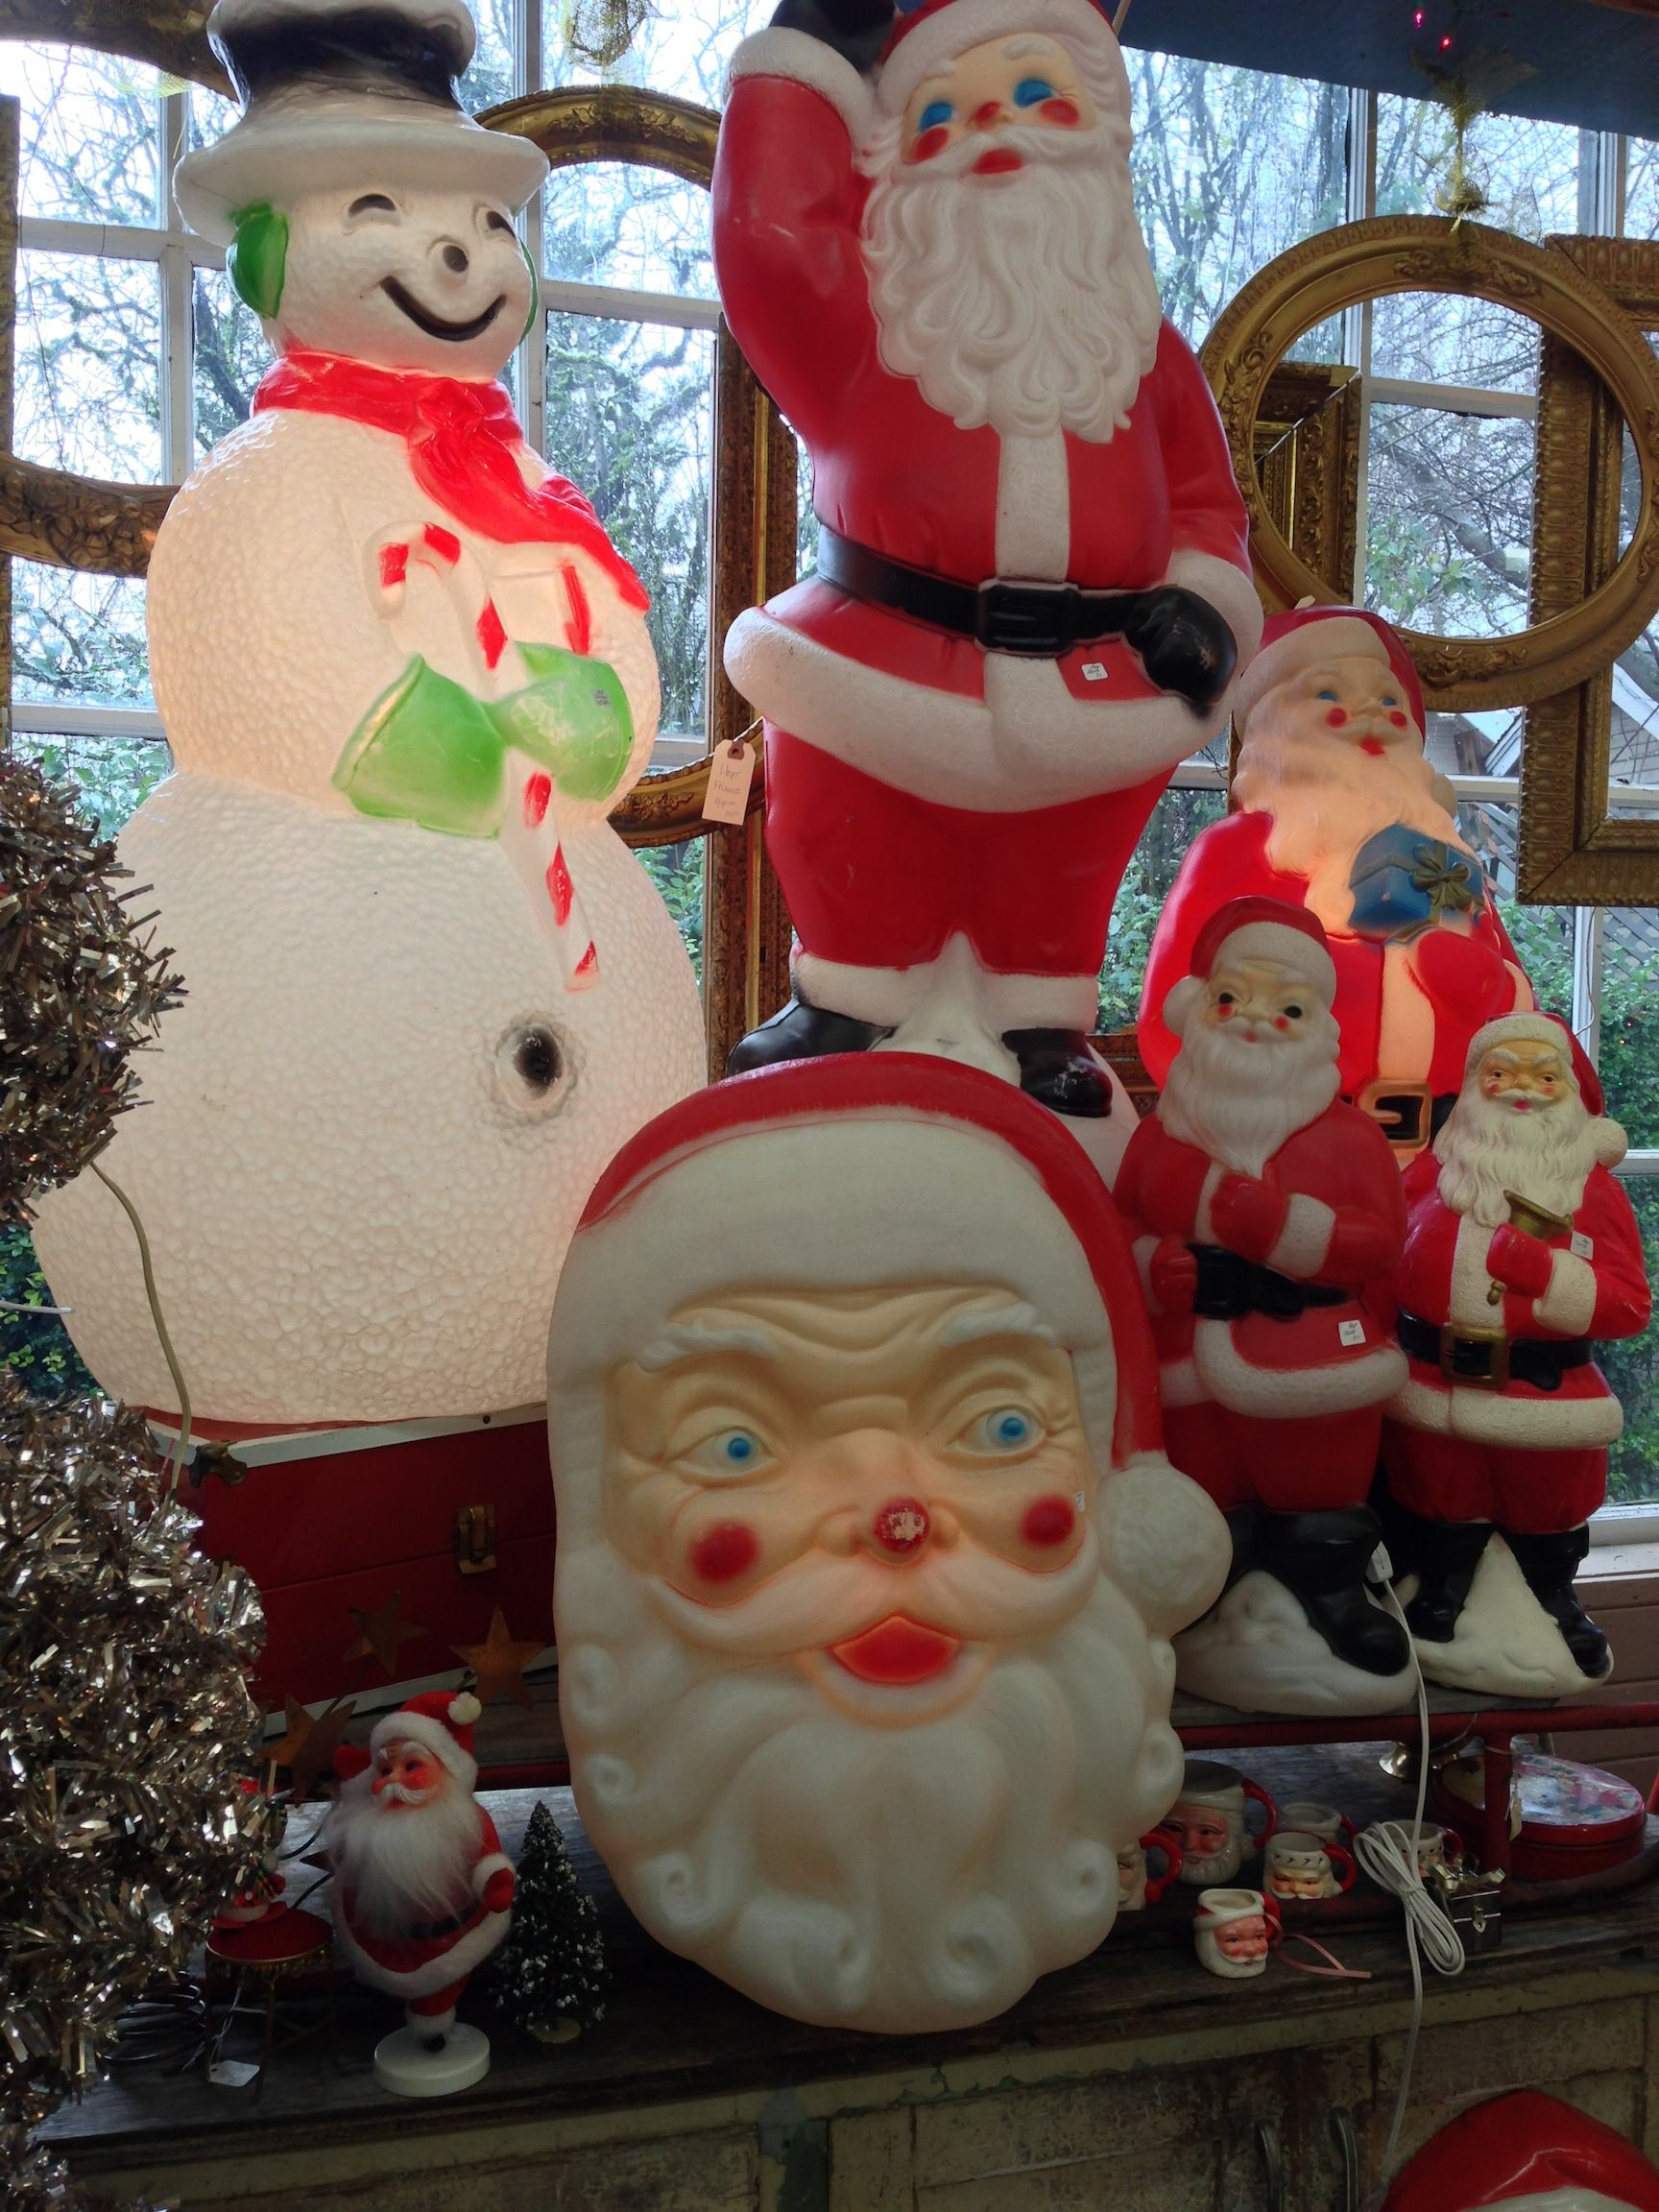 vintage blow mold christmas decorations santa is all lit up for the holiday - Vintage Christmas Decorations